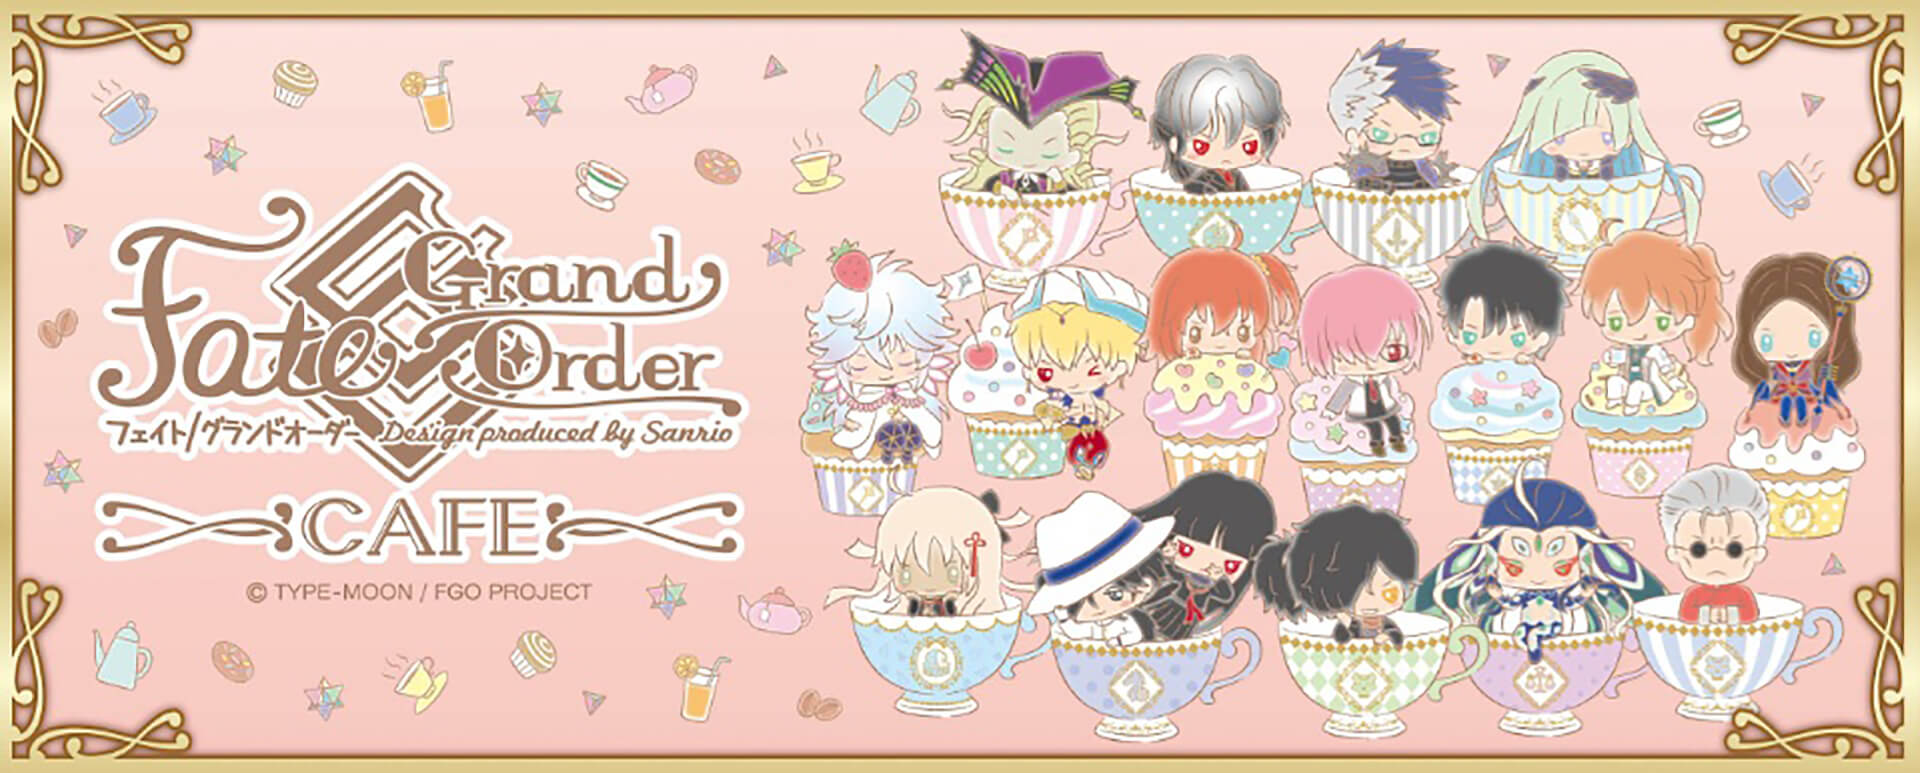 Fate/Grand Order Design produced by Sanrio カフェのメインビジュアル